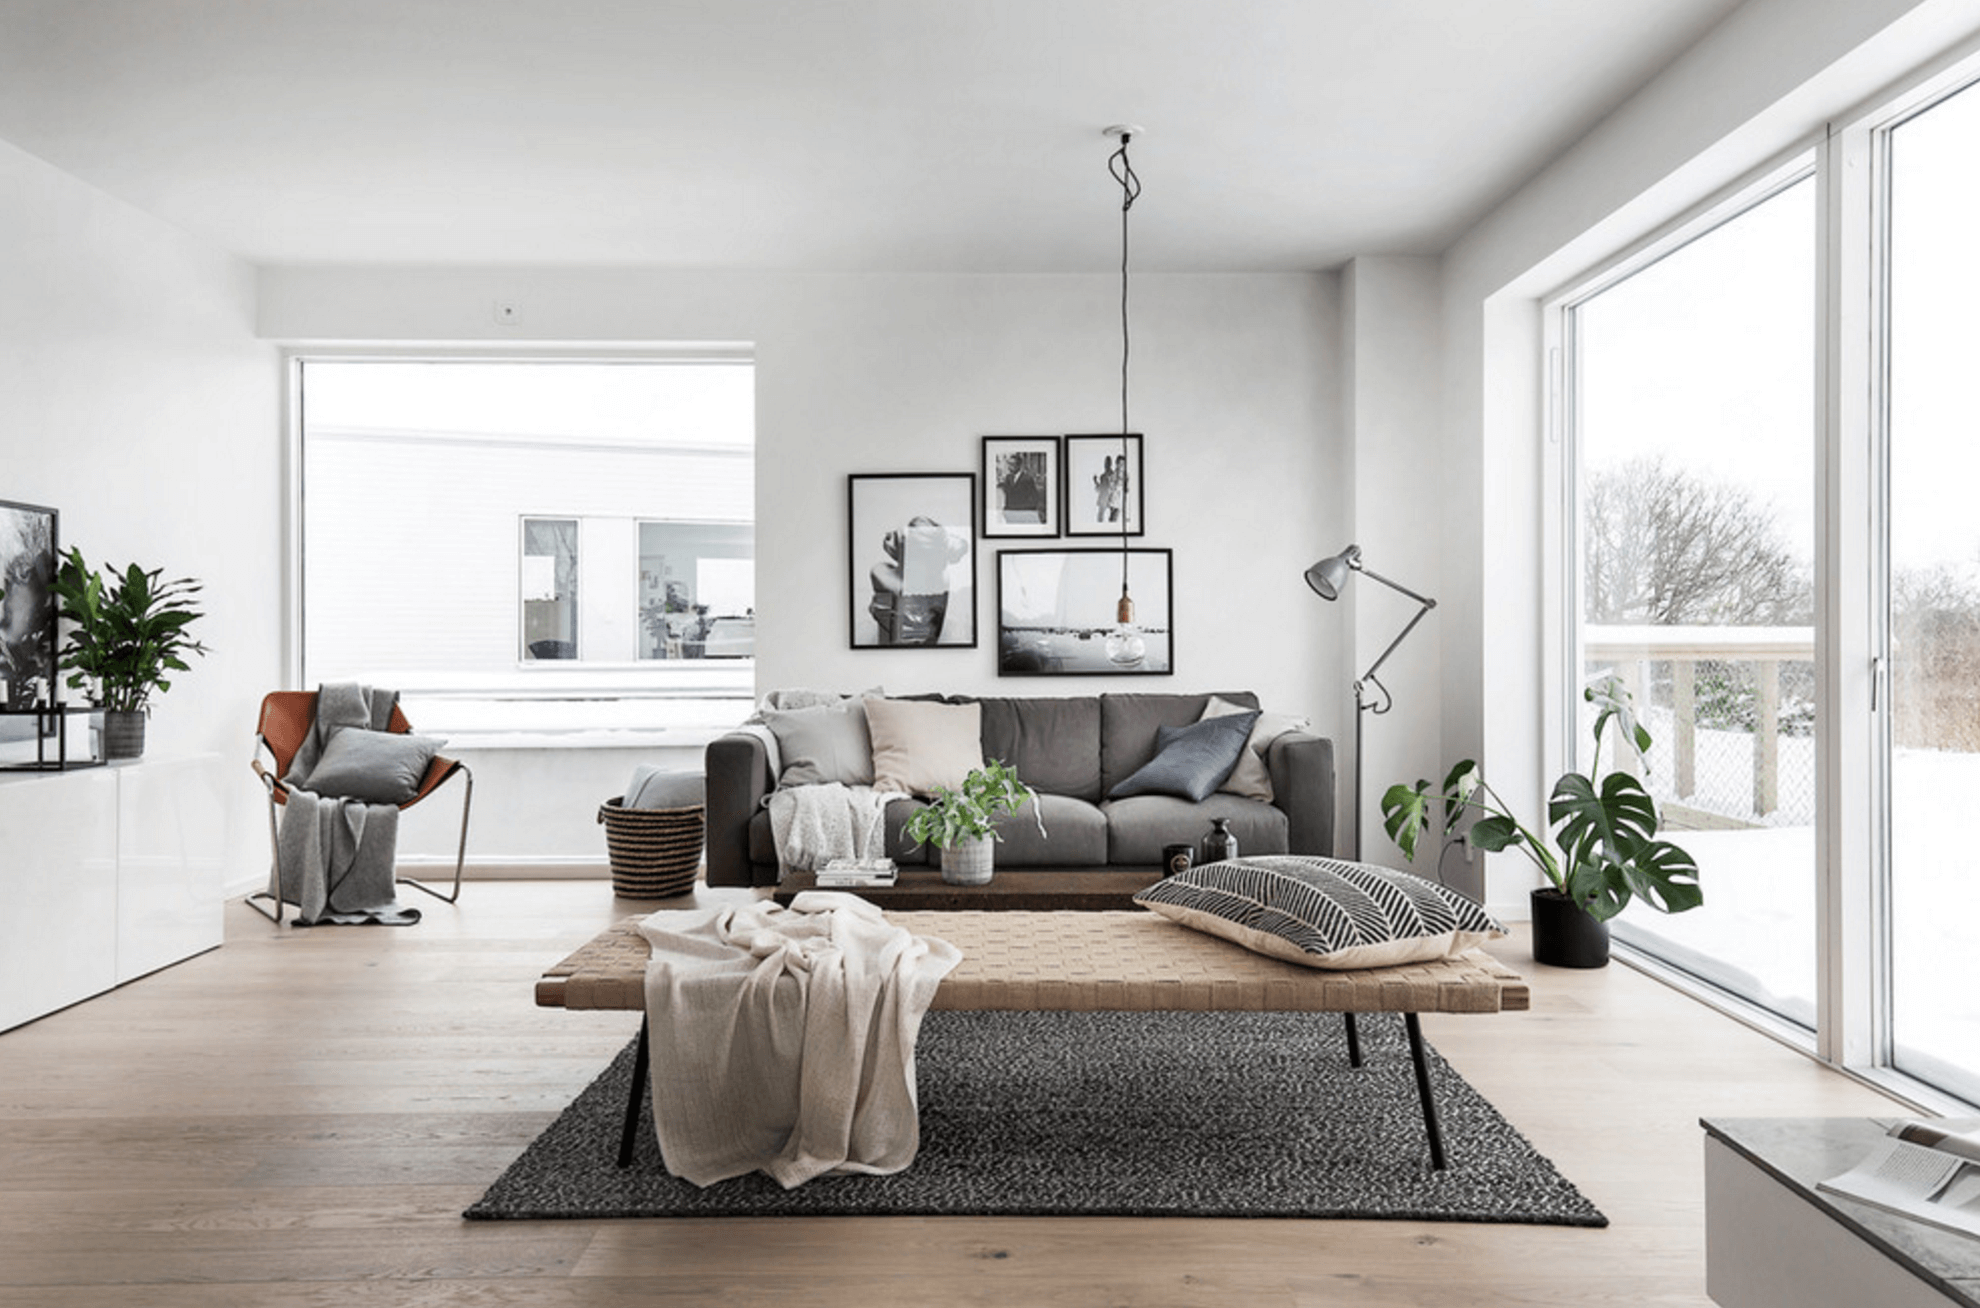 Is Your Home Trendy or Timeless? (Fres Home) | Scandinavian ...